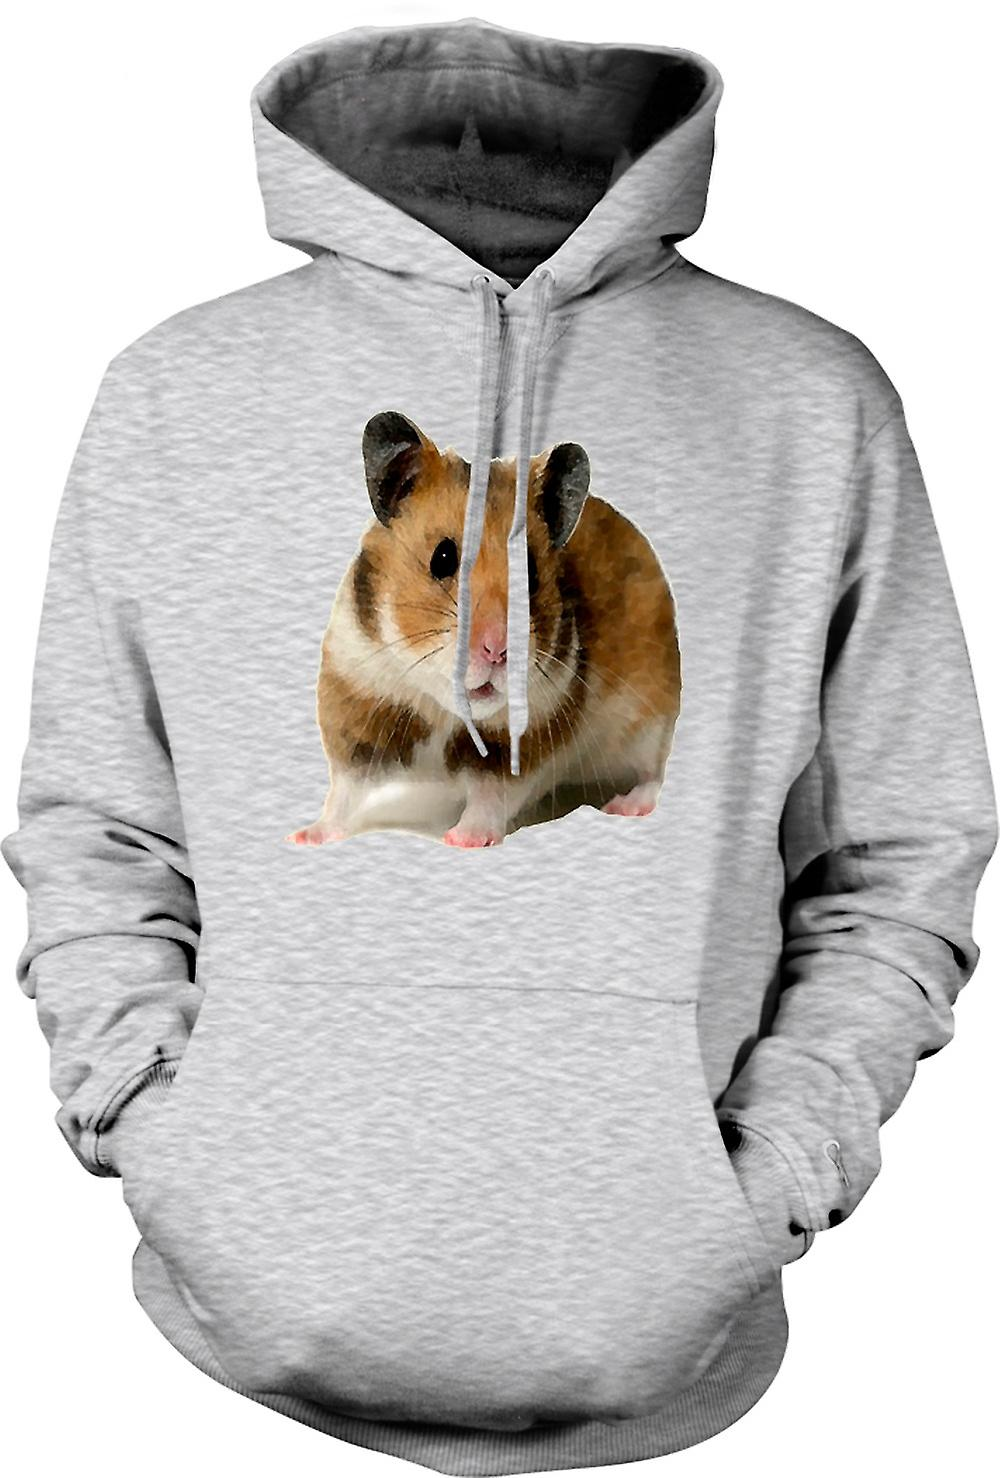 Mens Hoodie -  Hamster - Pet Animal